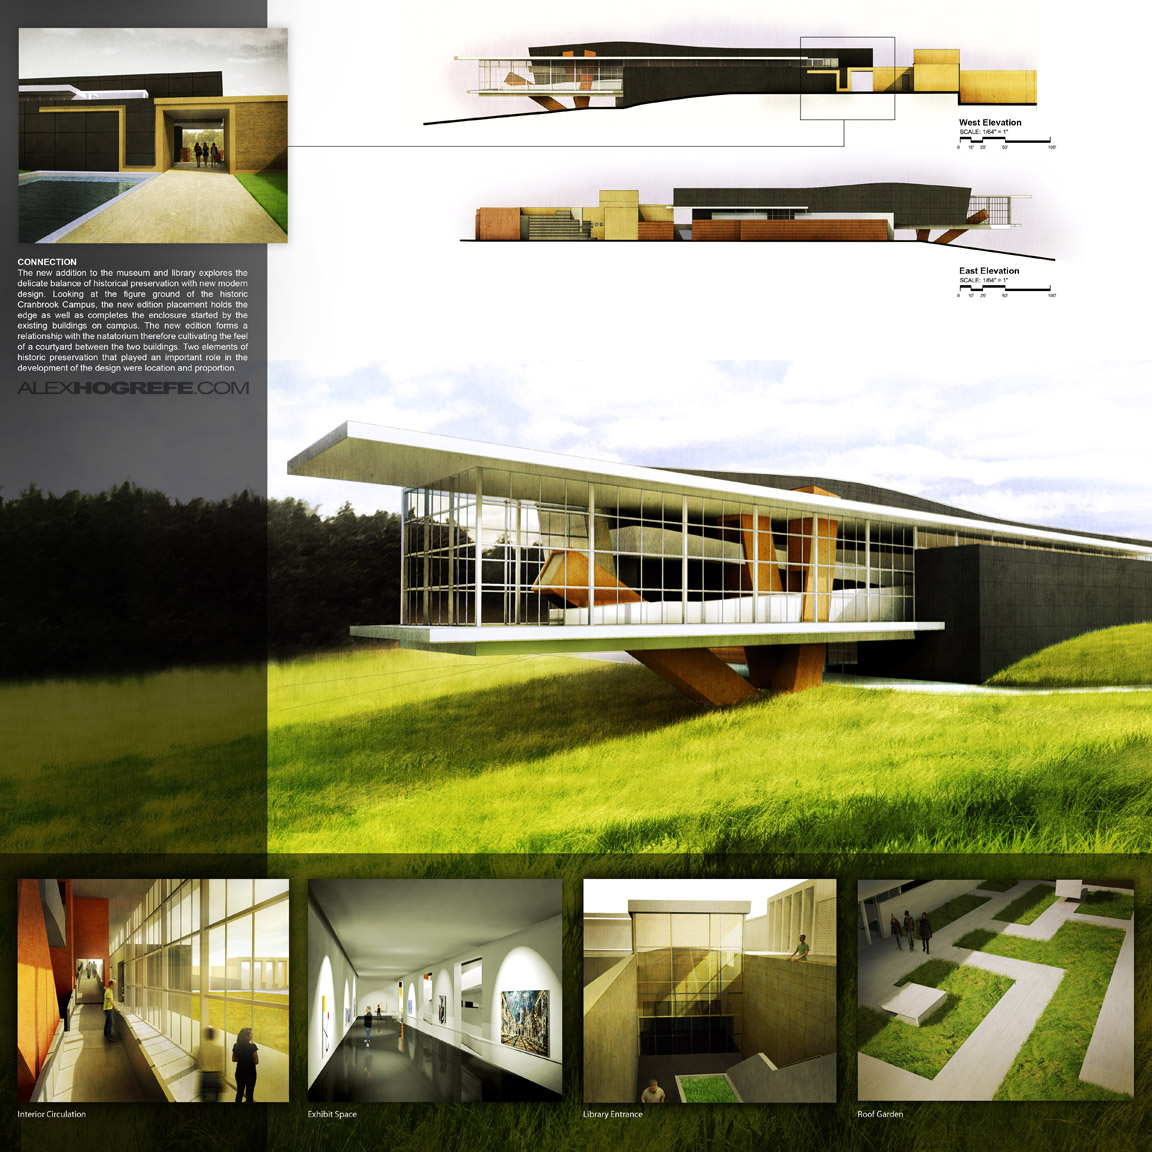 Alex_hogrefe_presentation_board_architecture_3